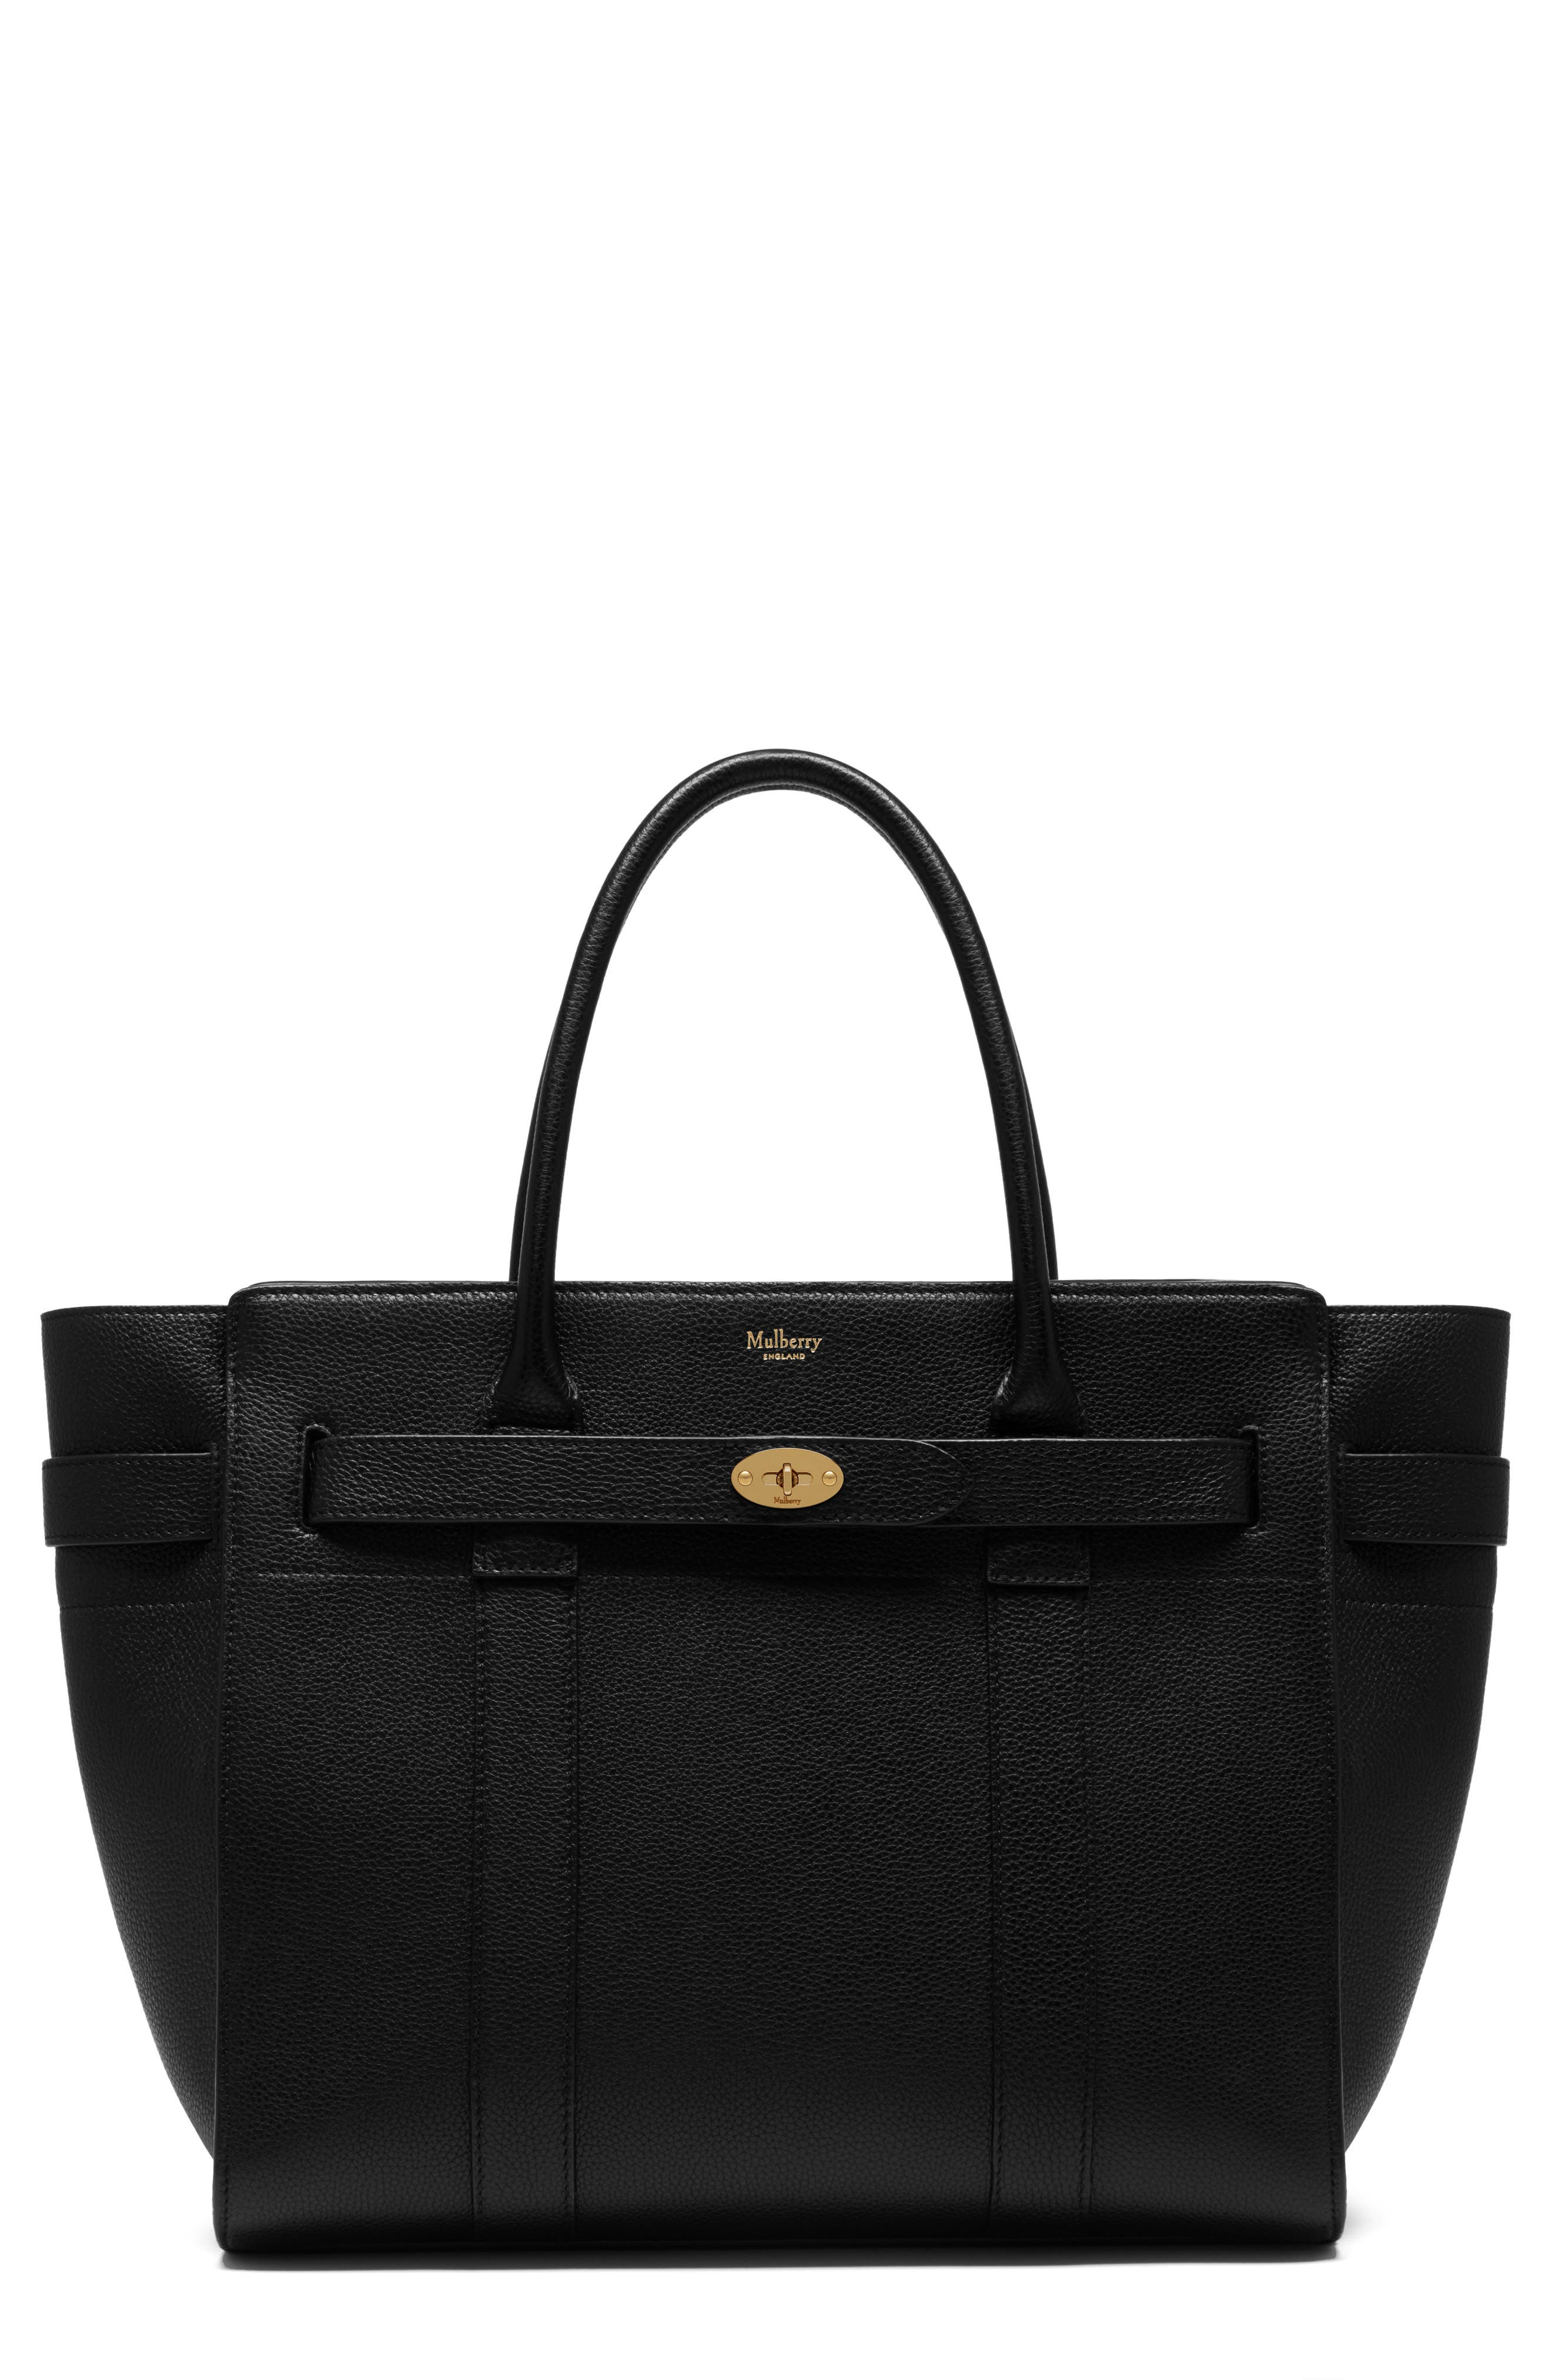 Mulberry Zipped Bayswater Leather Satchel